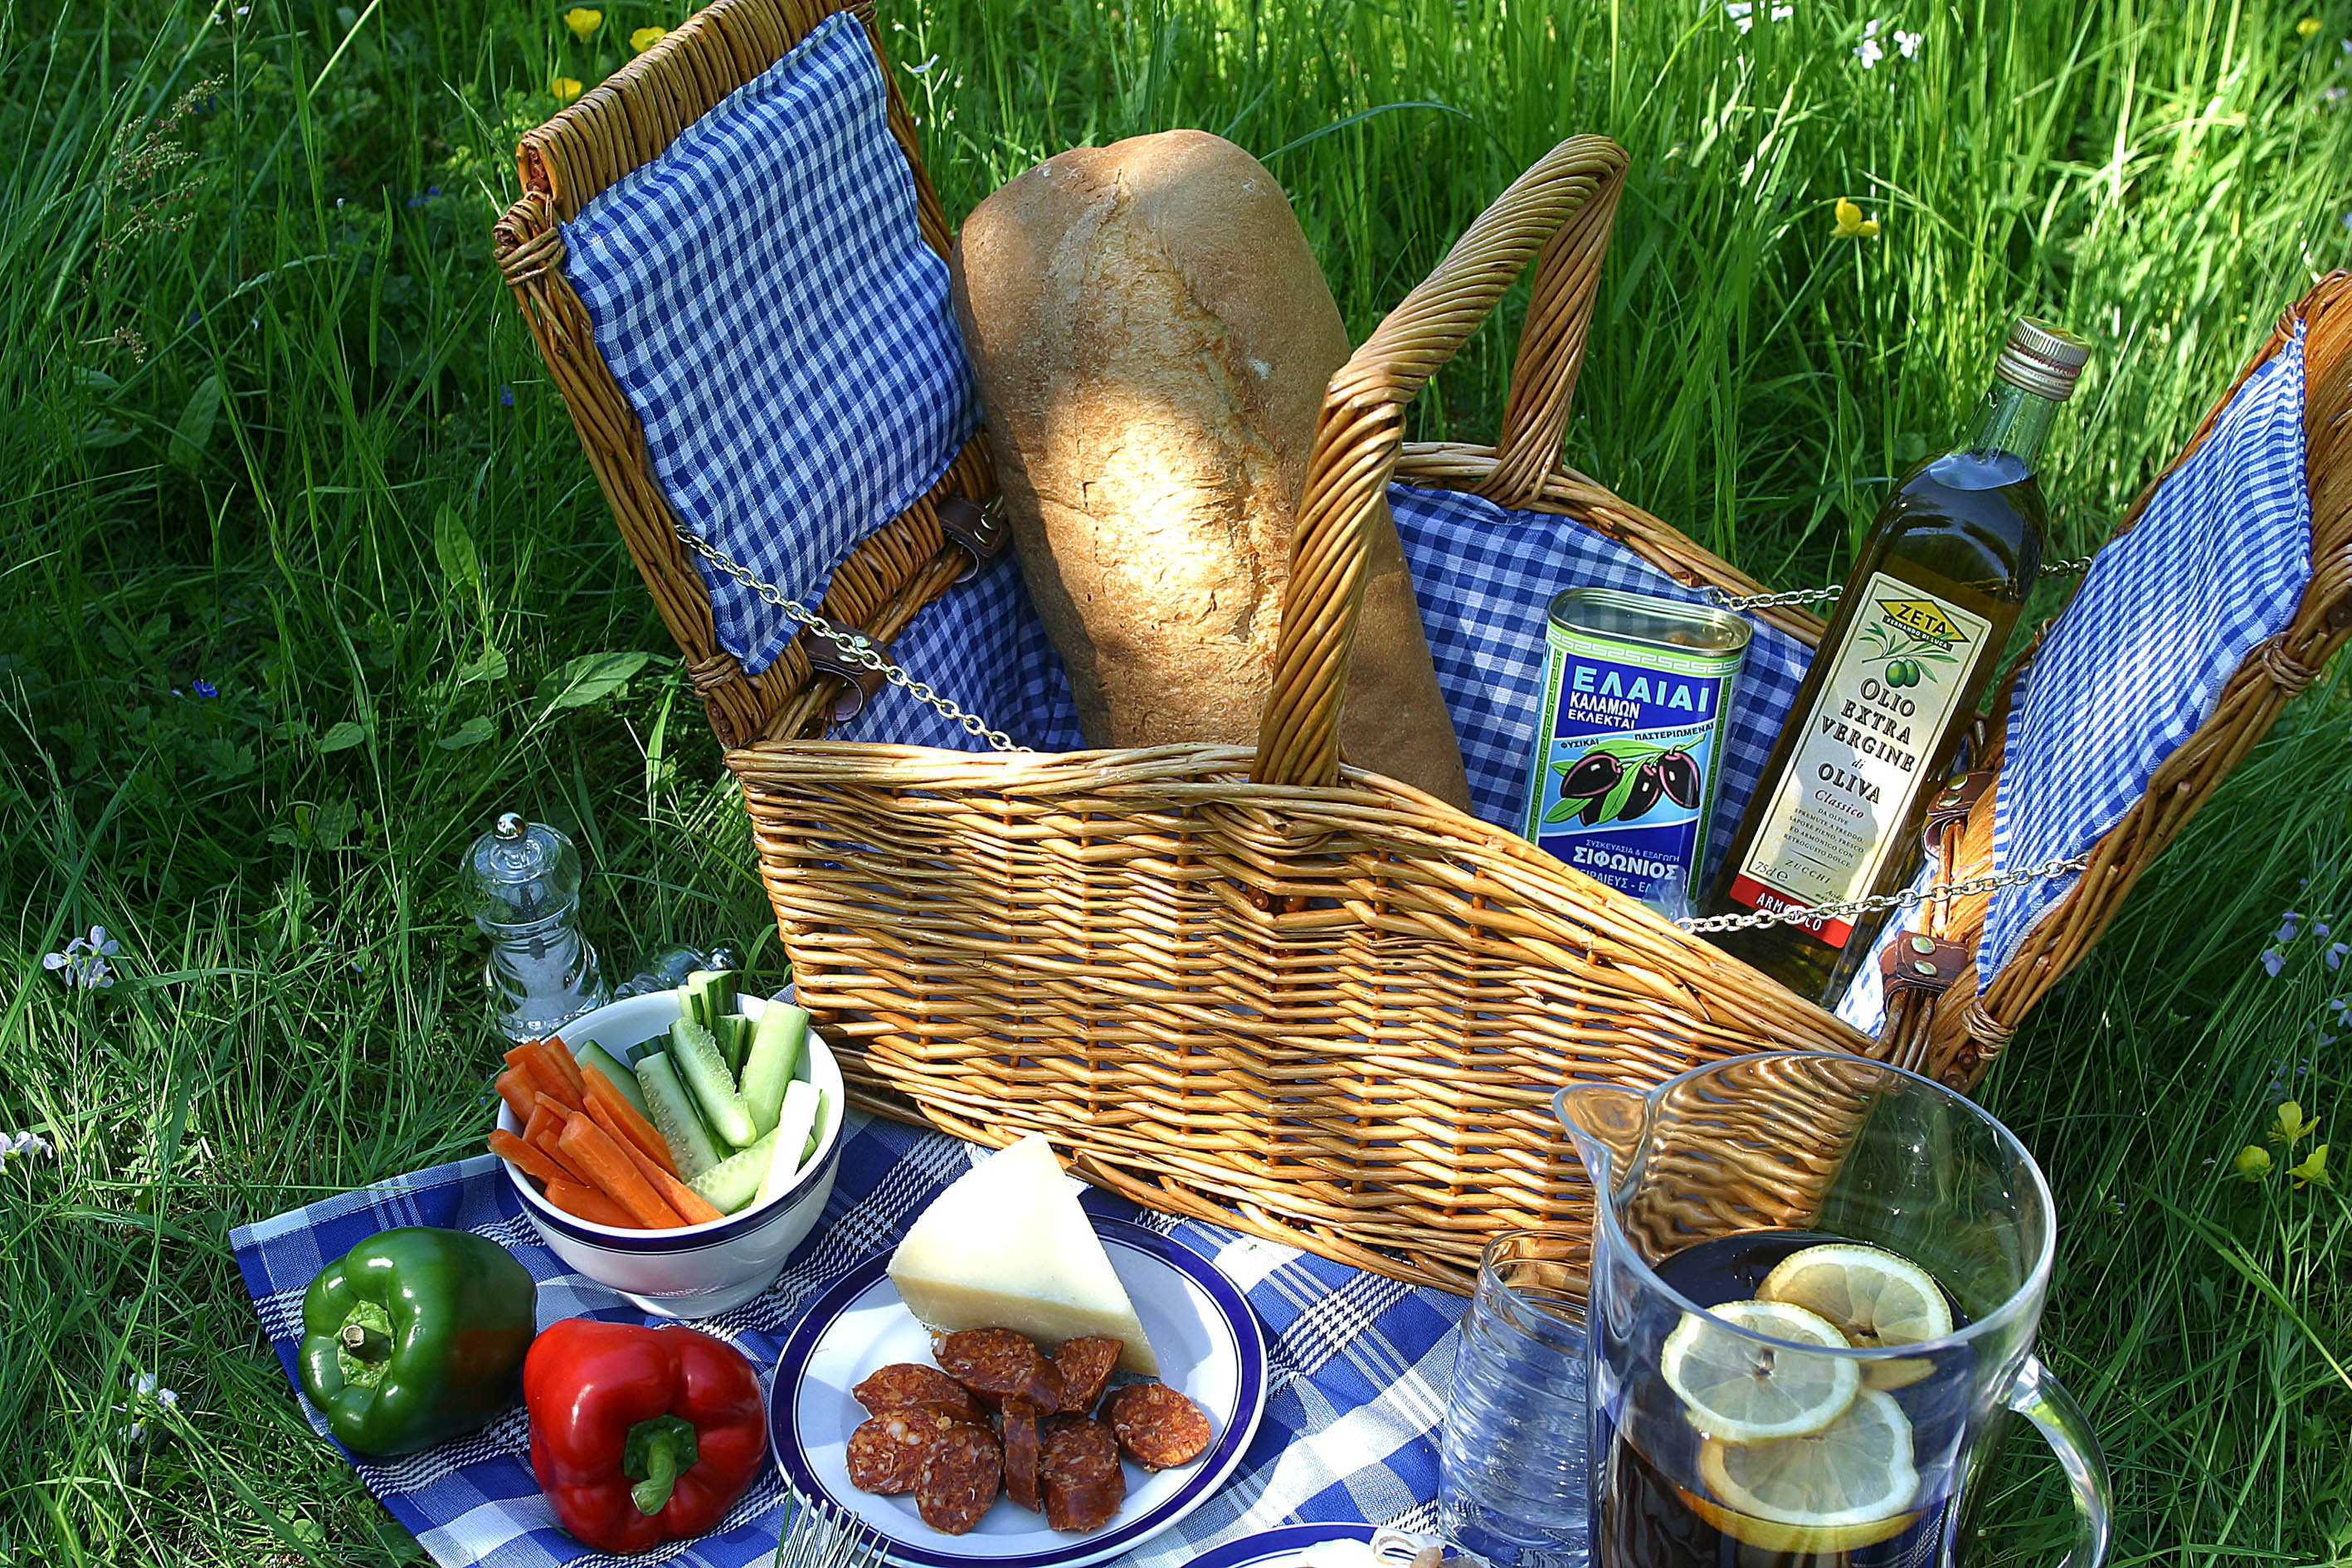 Picnic wallpapers images photos pictures backgrounds for Picnic food ideas for large groups